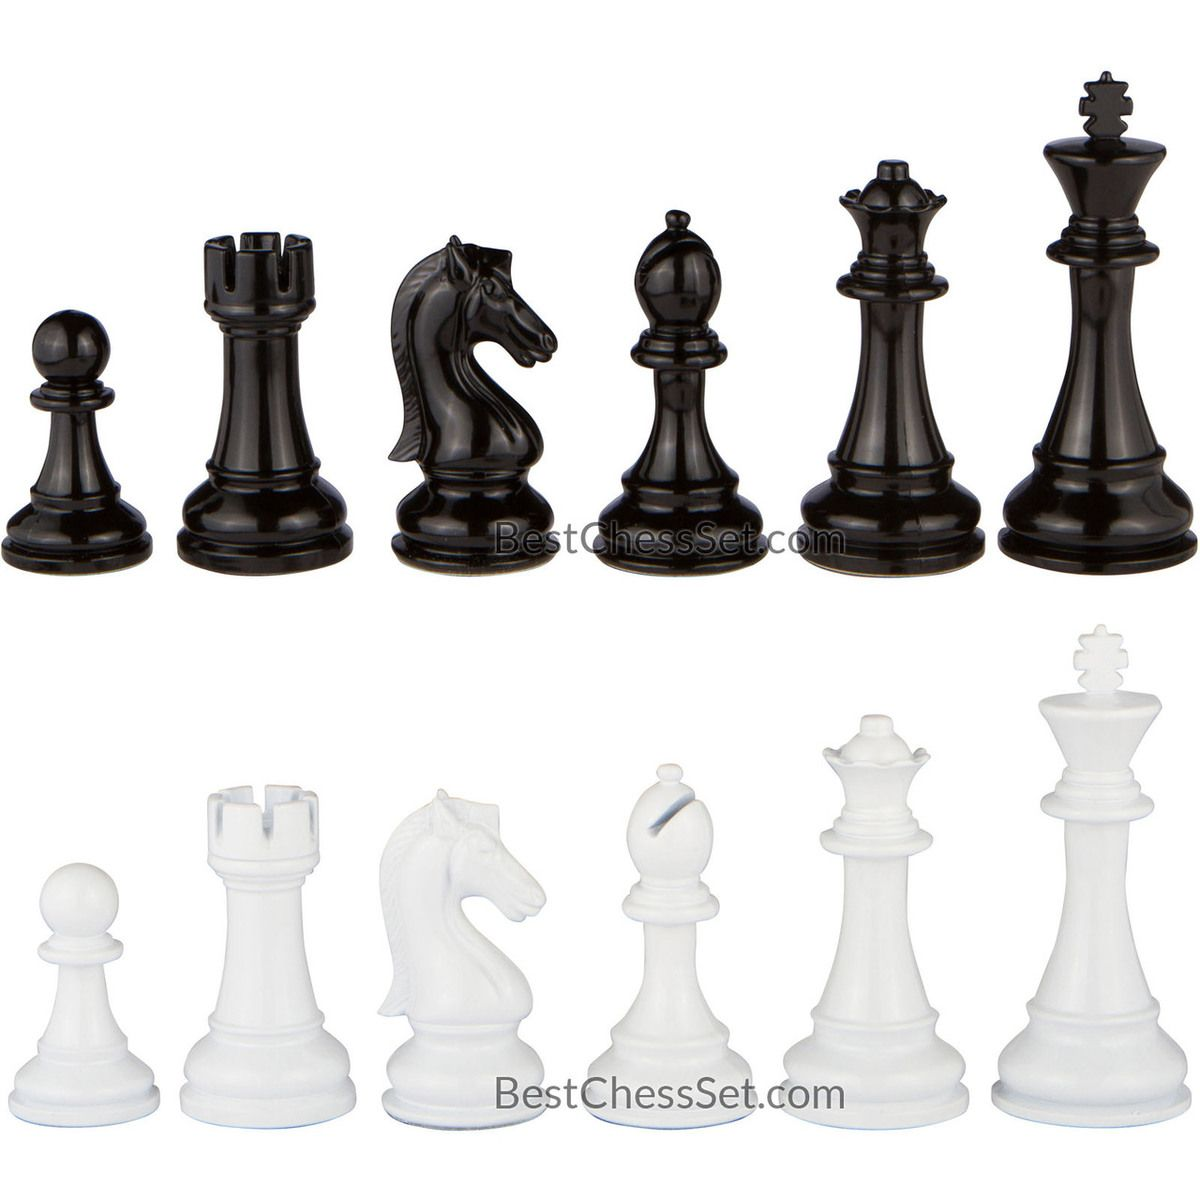 Steel Chess Pieces Review Minerva Black And White Extra Heavy Metal Chess